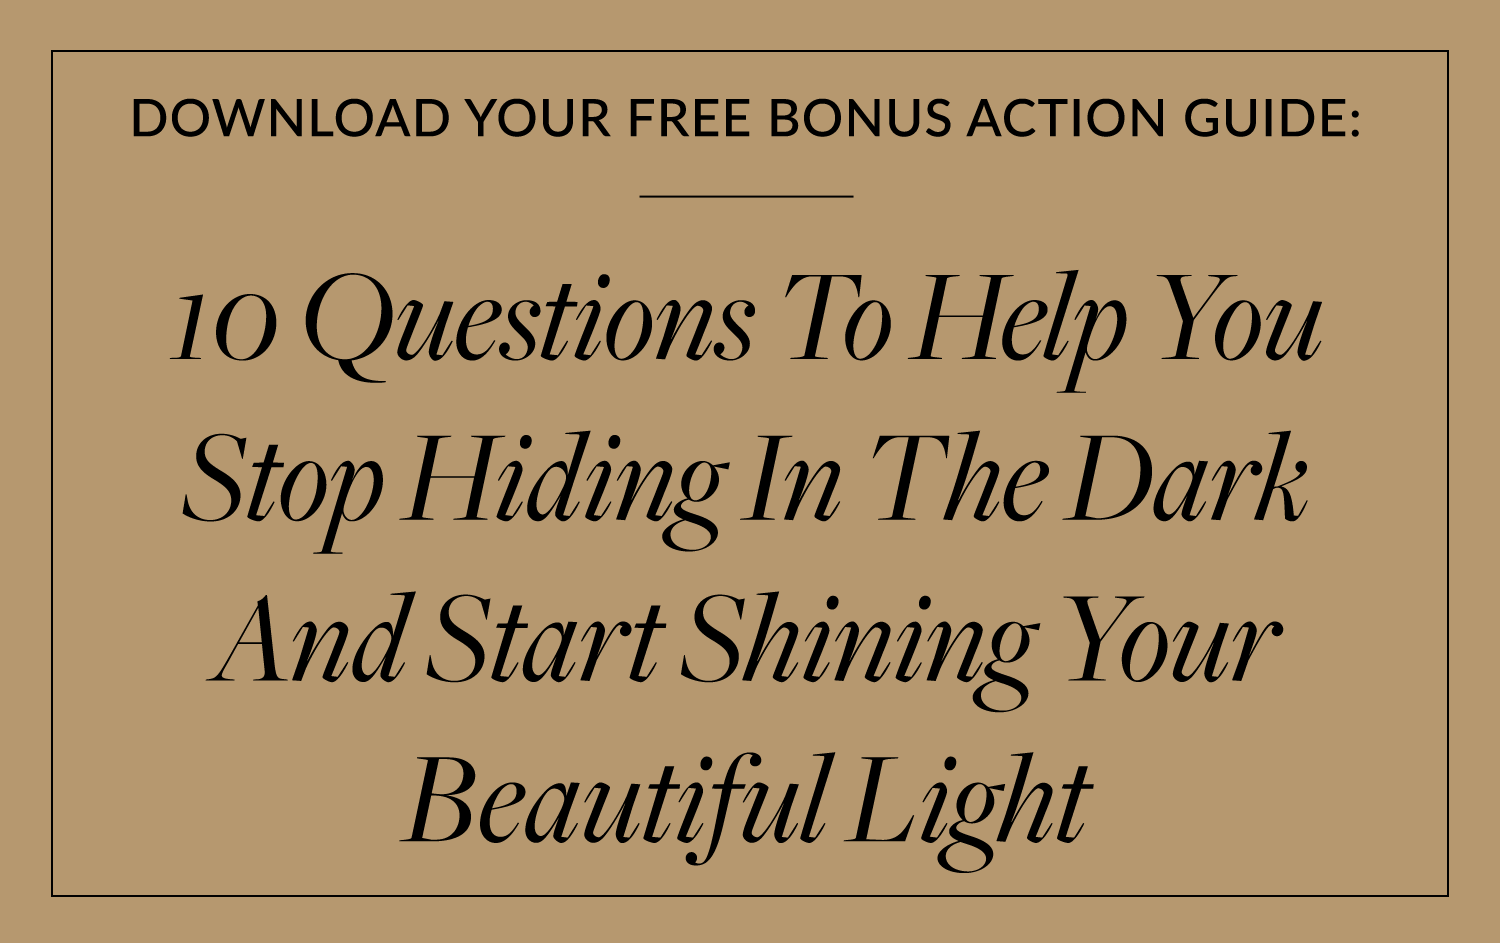 10 Questions To Help You Stop Hiding In The Dark